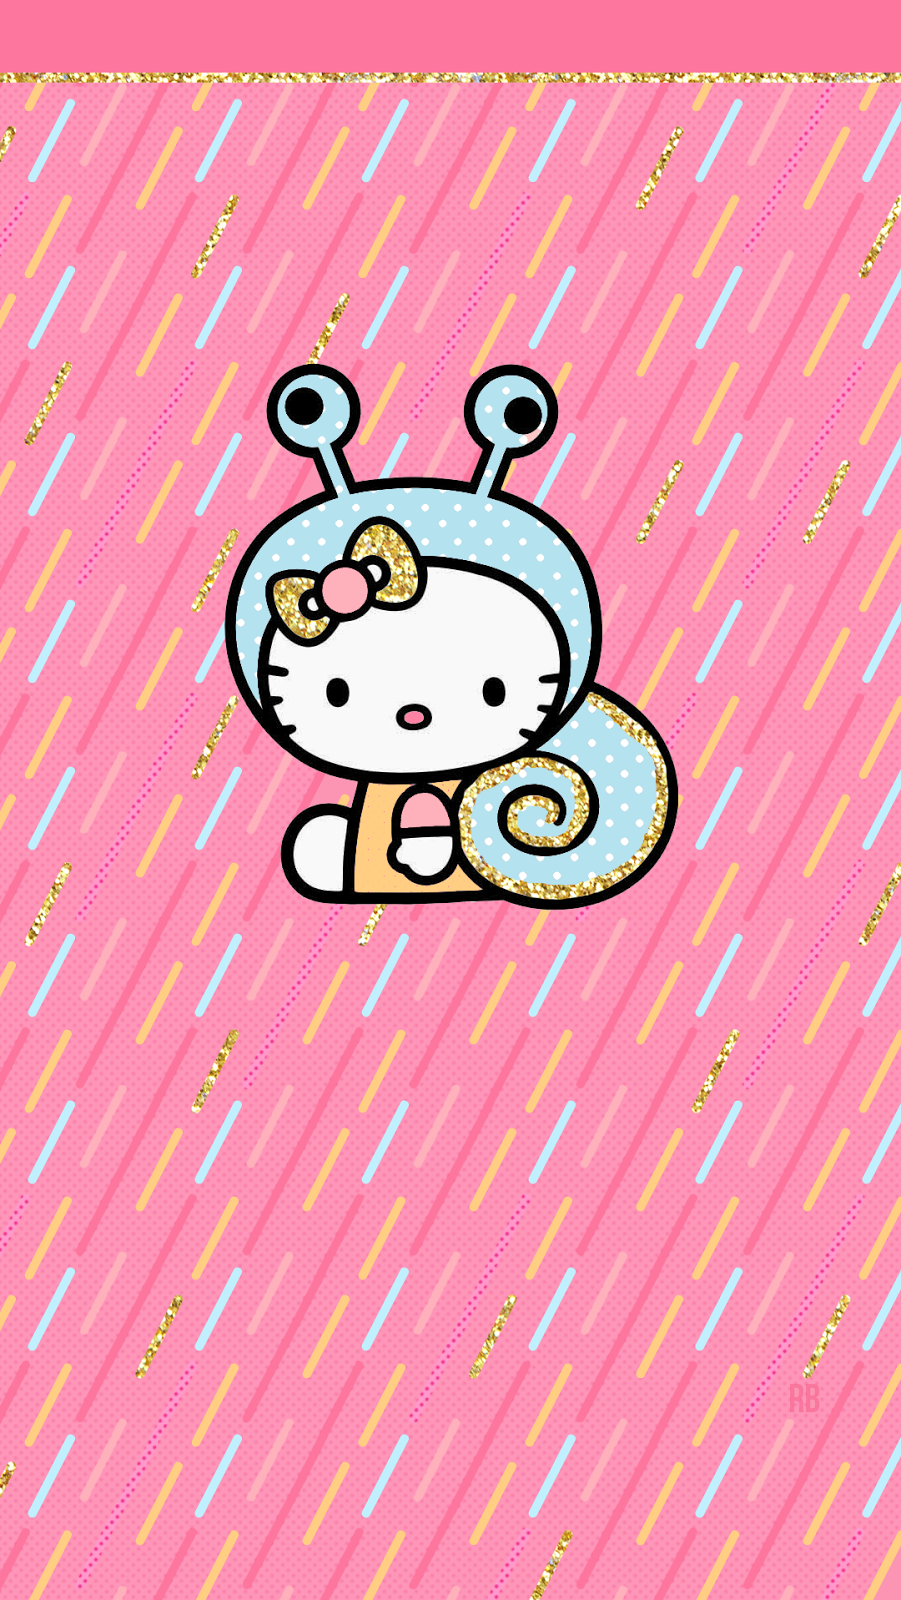 Hello Kitty Snail Cute Sprinkles Gold Glitter Pink Pastels Adorable Phone Wallpaper Wallies Freebies Free Iph Hello Kitty Wallpaper Kitty Wallpaper Hello Kitty